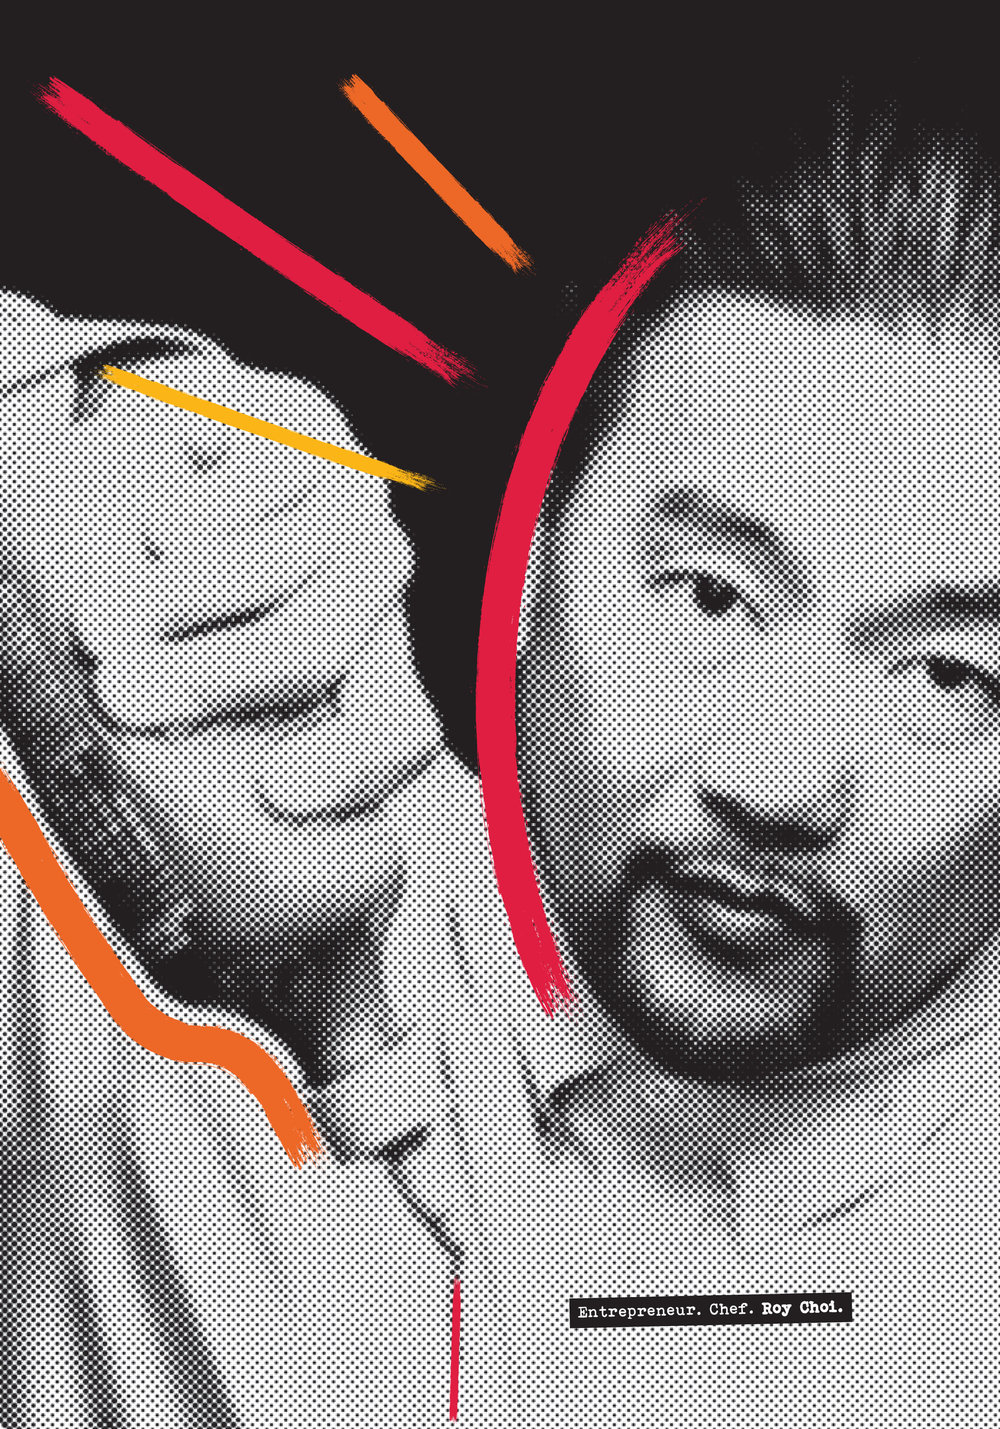 Combining Typography& Illustration - This project is all about Roy Choi. An Asian-American and Los Angles-born master chef, Roy has a gritty, yet bright aura about him. I strove to give him a visual language that highlighted his never ending optimism, fun, and passion for his city. My best work features my ability to integrate illustration and design seamlessly, which I did here. Utilizing a combination of paint-like illustration, hand-drawn typography, and textured photos, I created a style that I think Roy himself would enjoy.